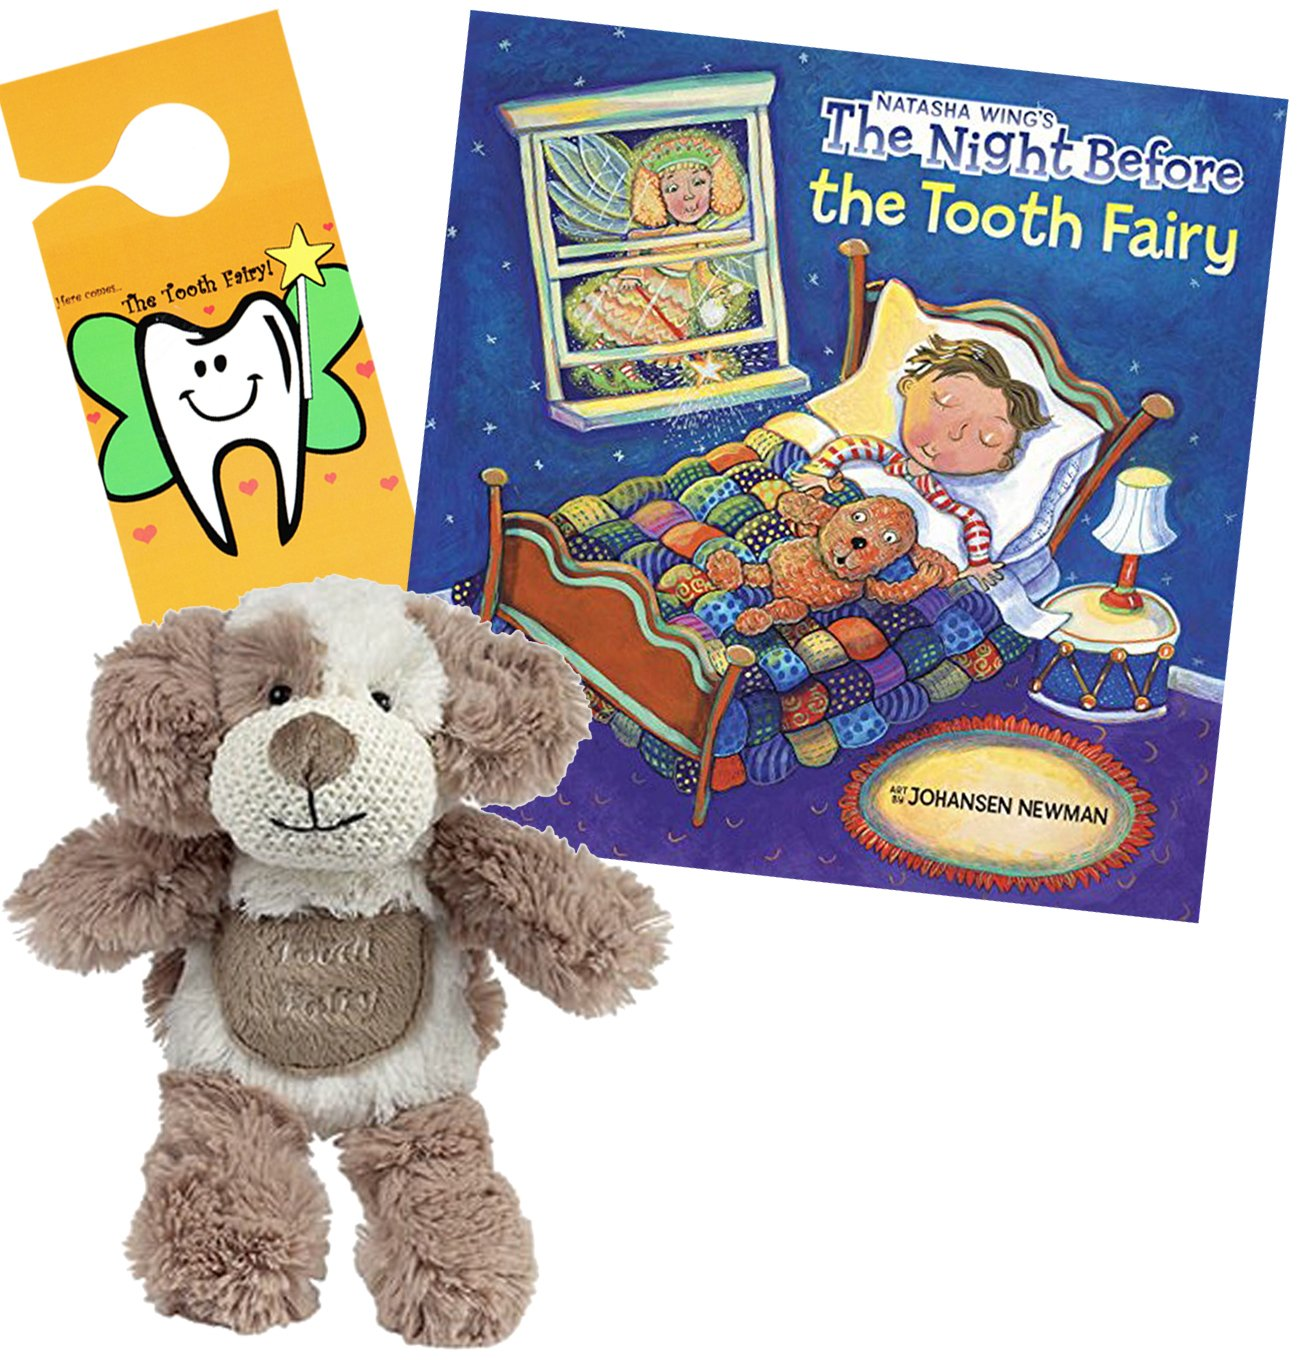 Dog Tooth Fairy Pillow w/ Tooth Fairy Book Night Before the Tooth Fairy & Door Hanger Gift Set